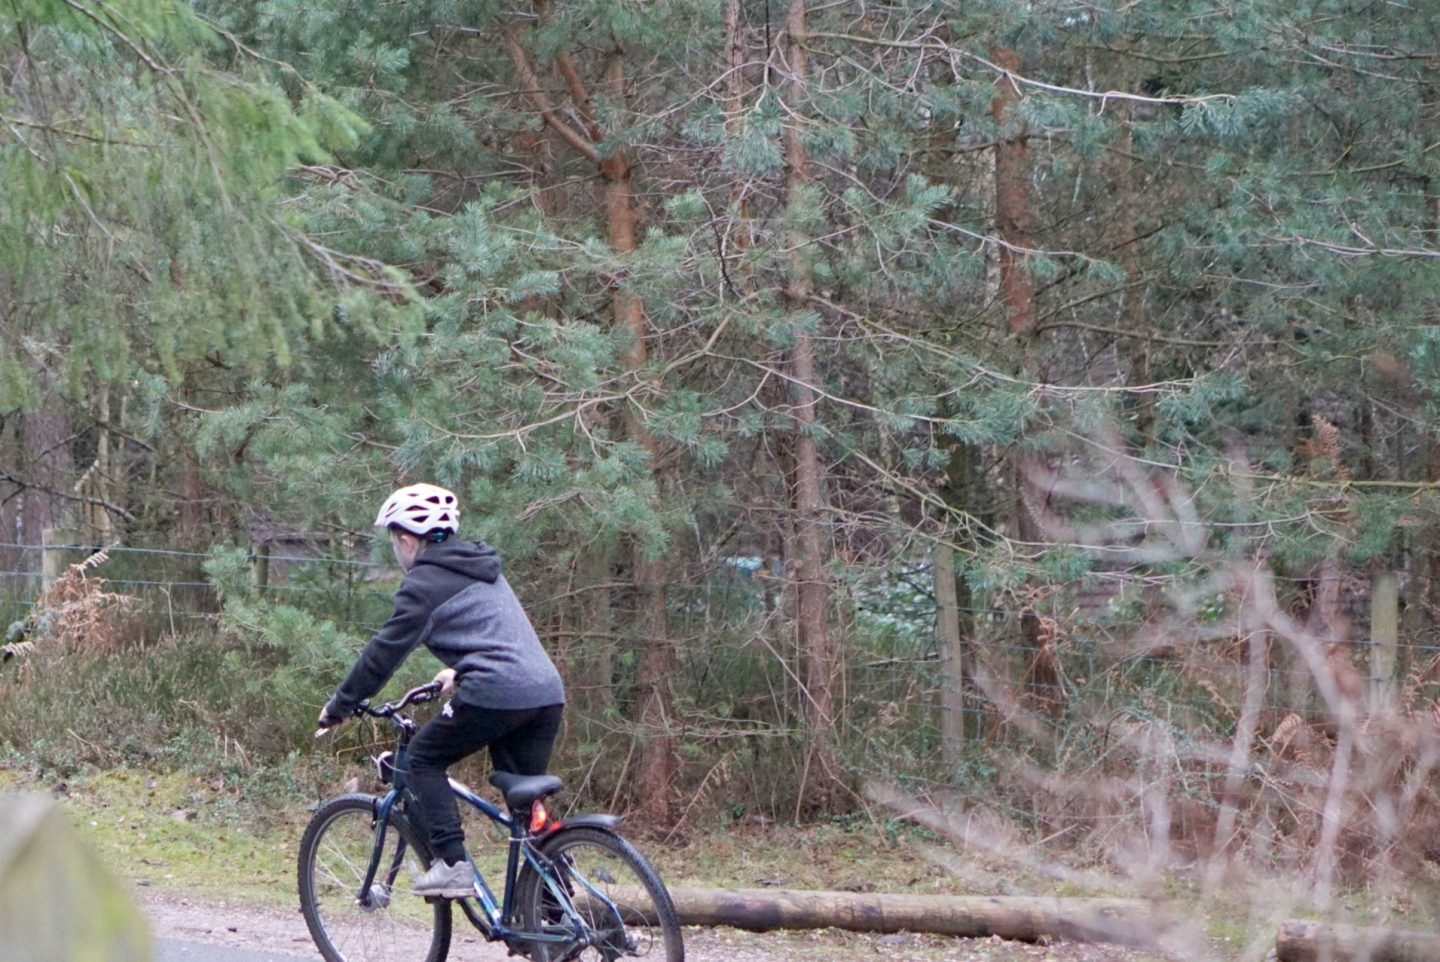 Teenagers at Center Parcs Whinfell Forrest www.extraordinarychaos.com